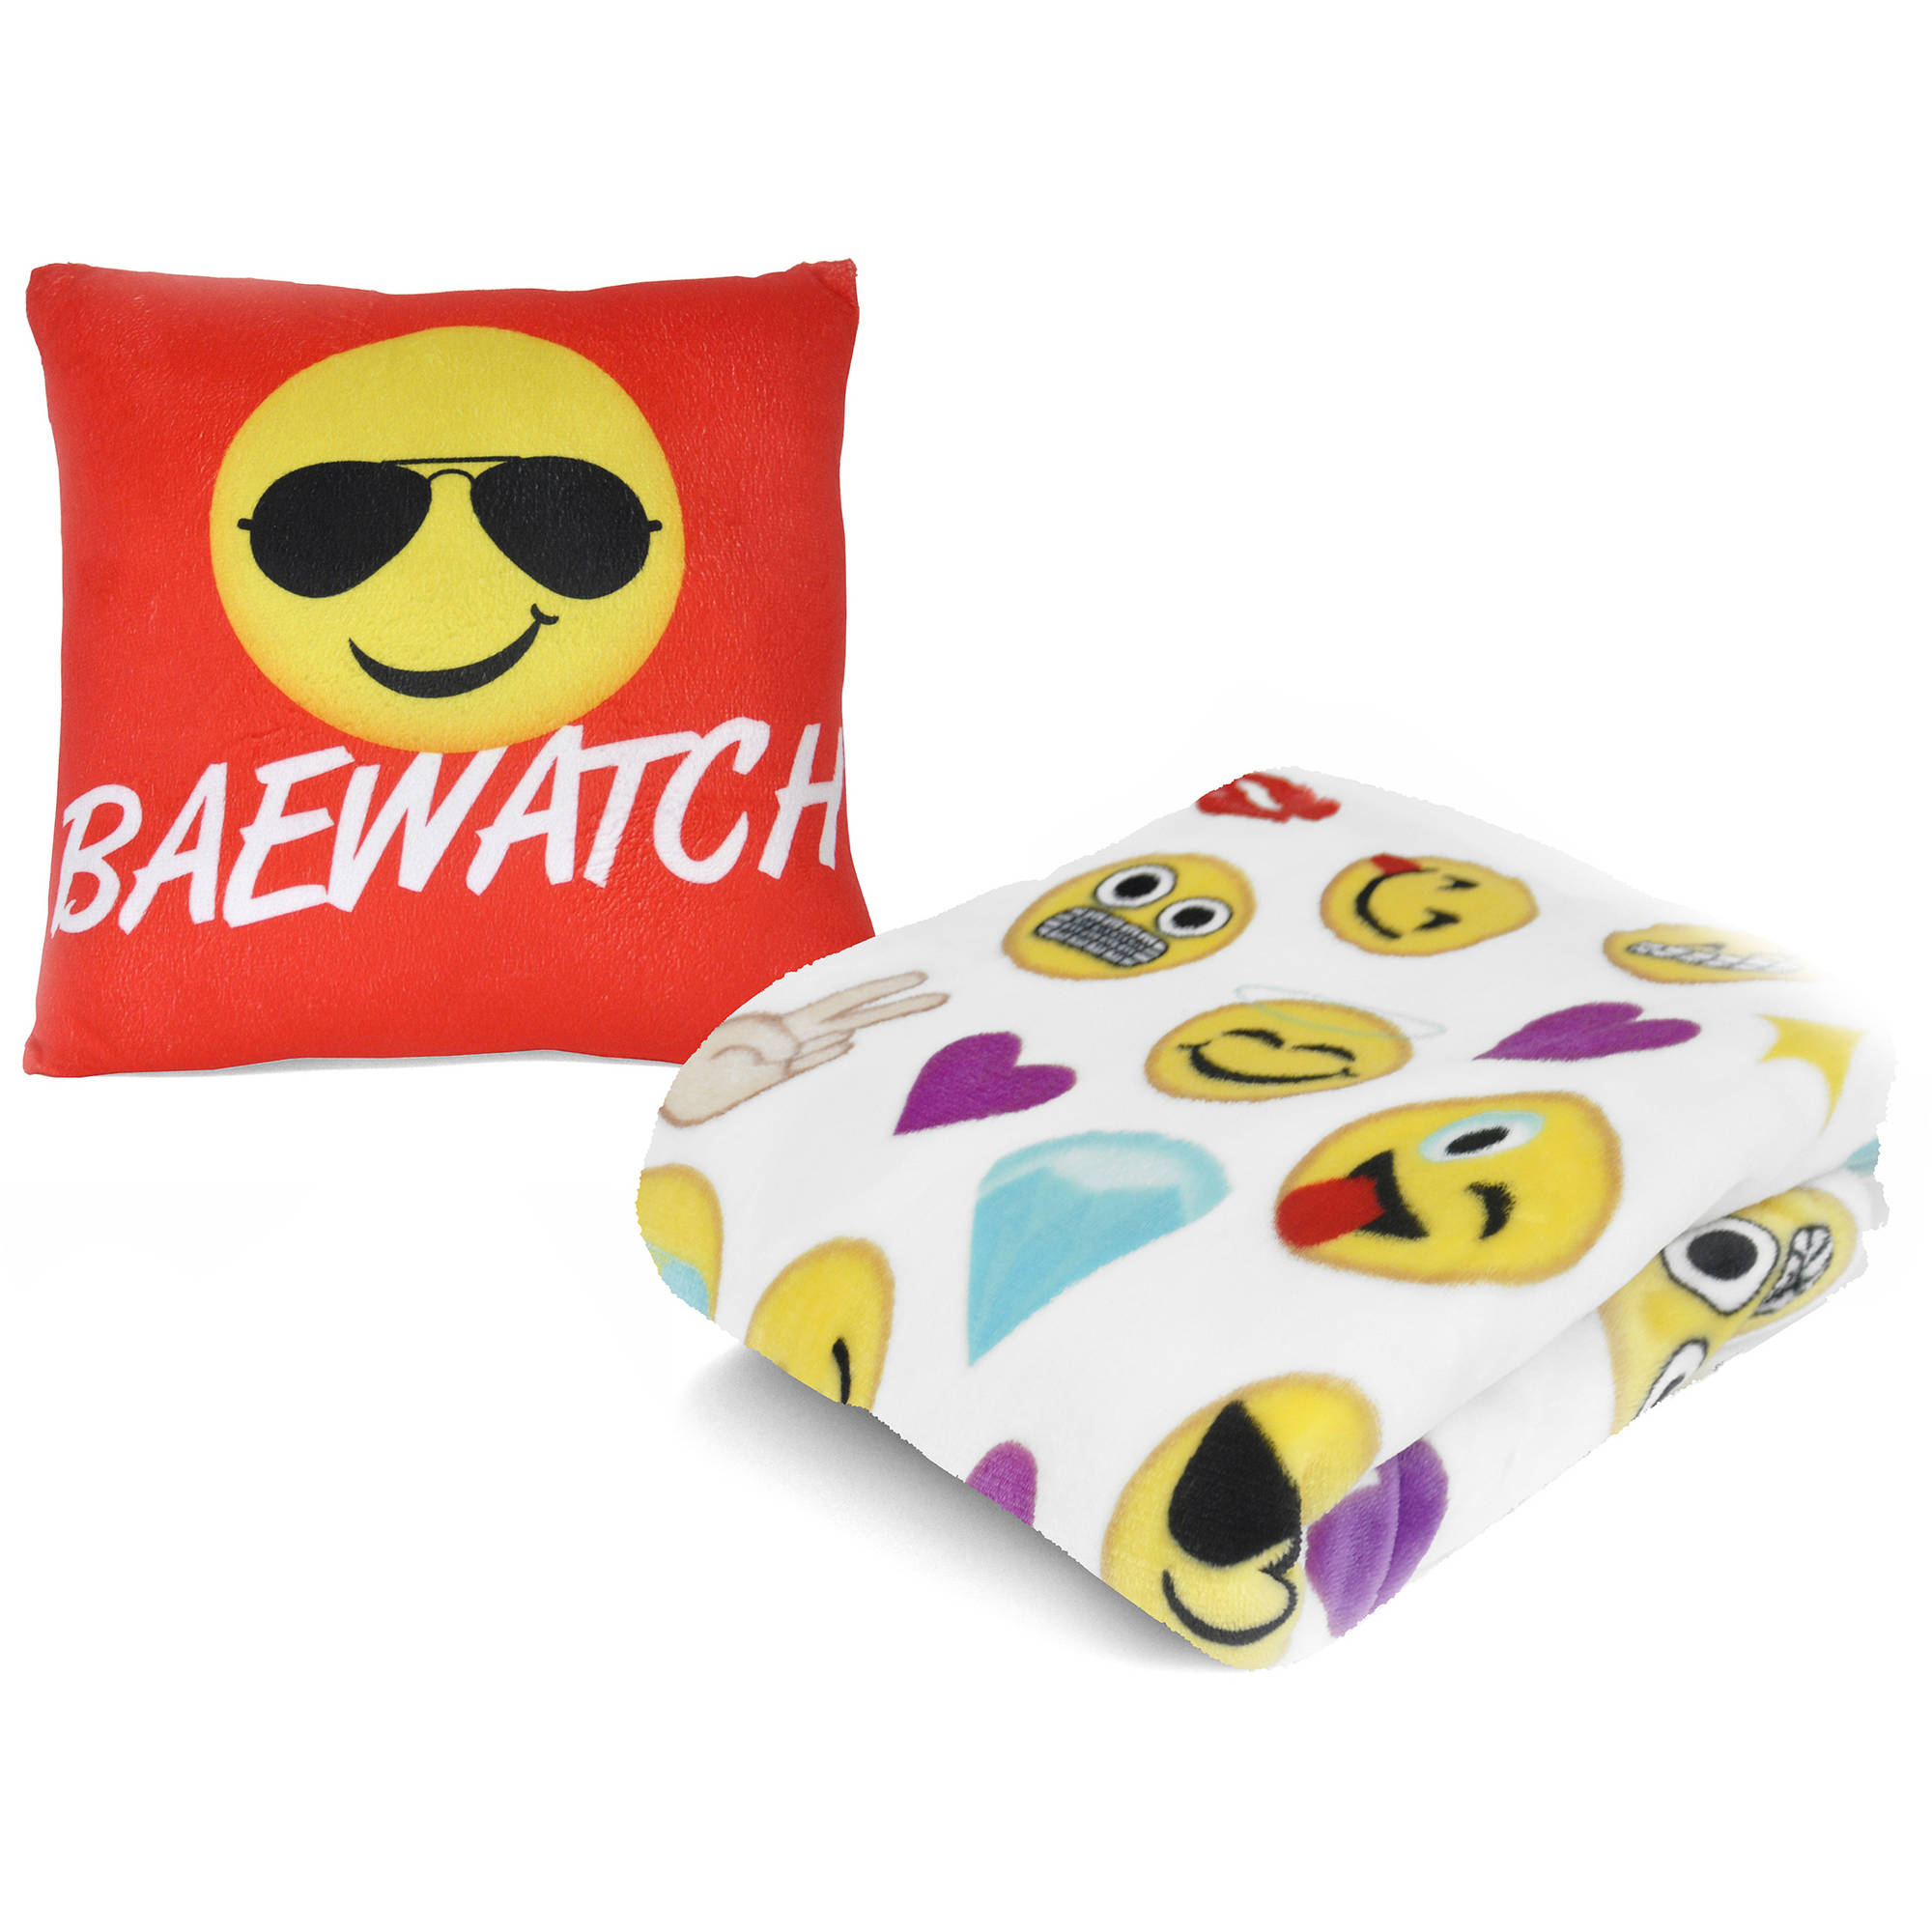 "EmojiPals 12"" x 12"" Pillow and Throw Set"